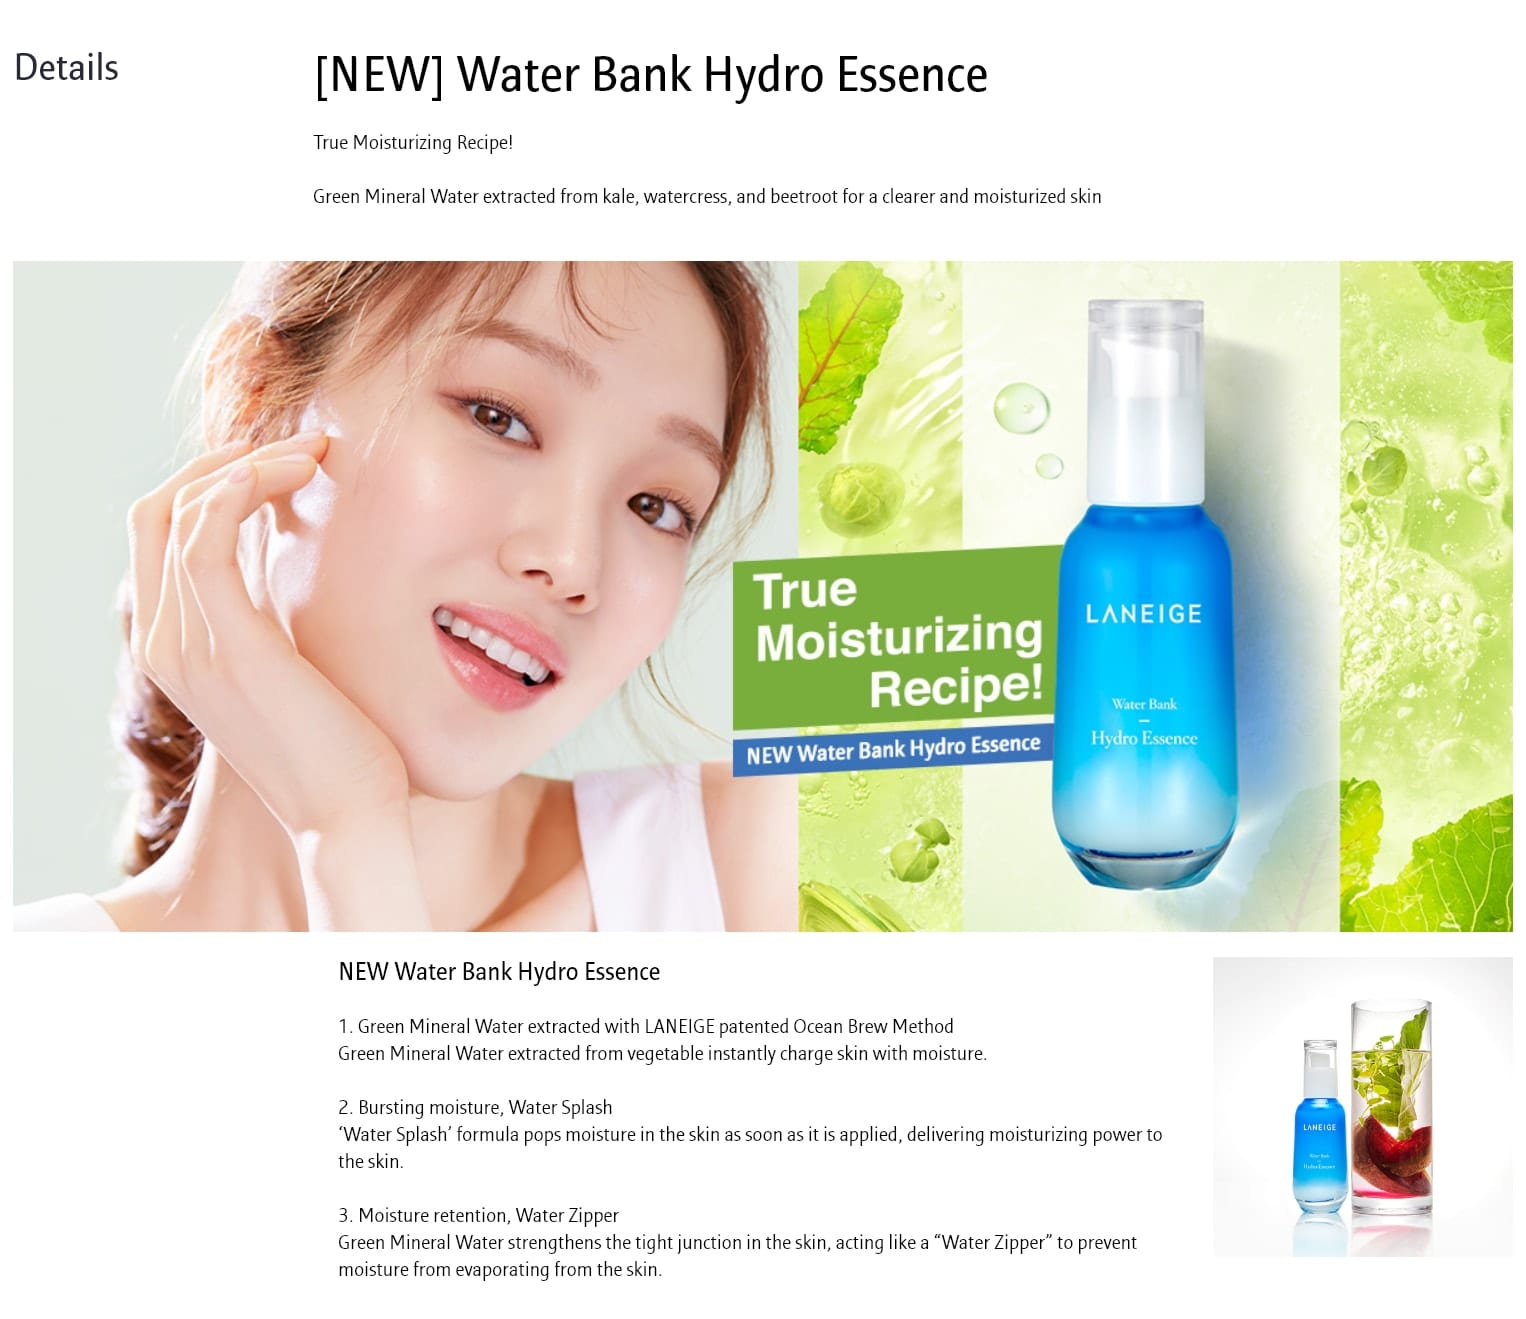 Laneige Water Bank Hydro Essence - details